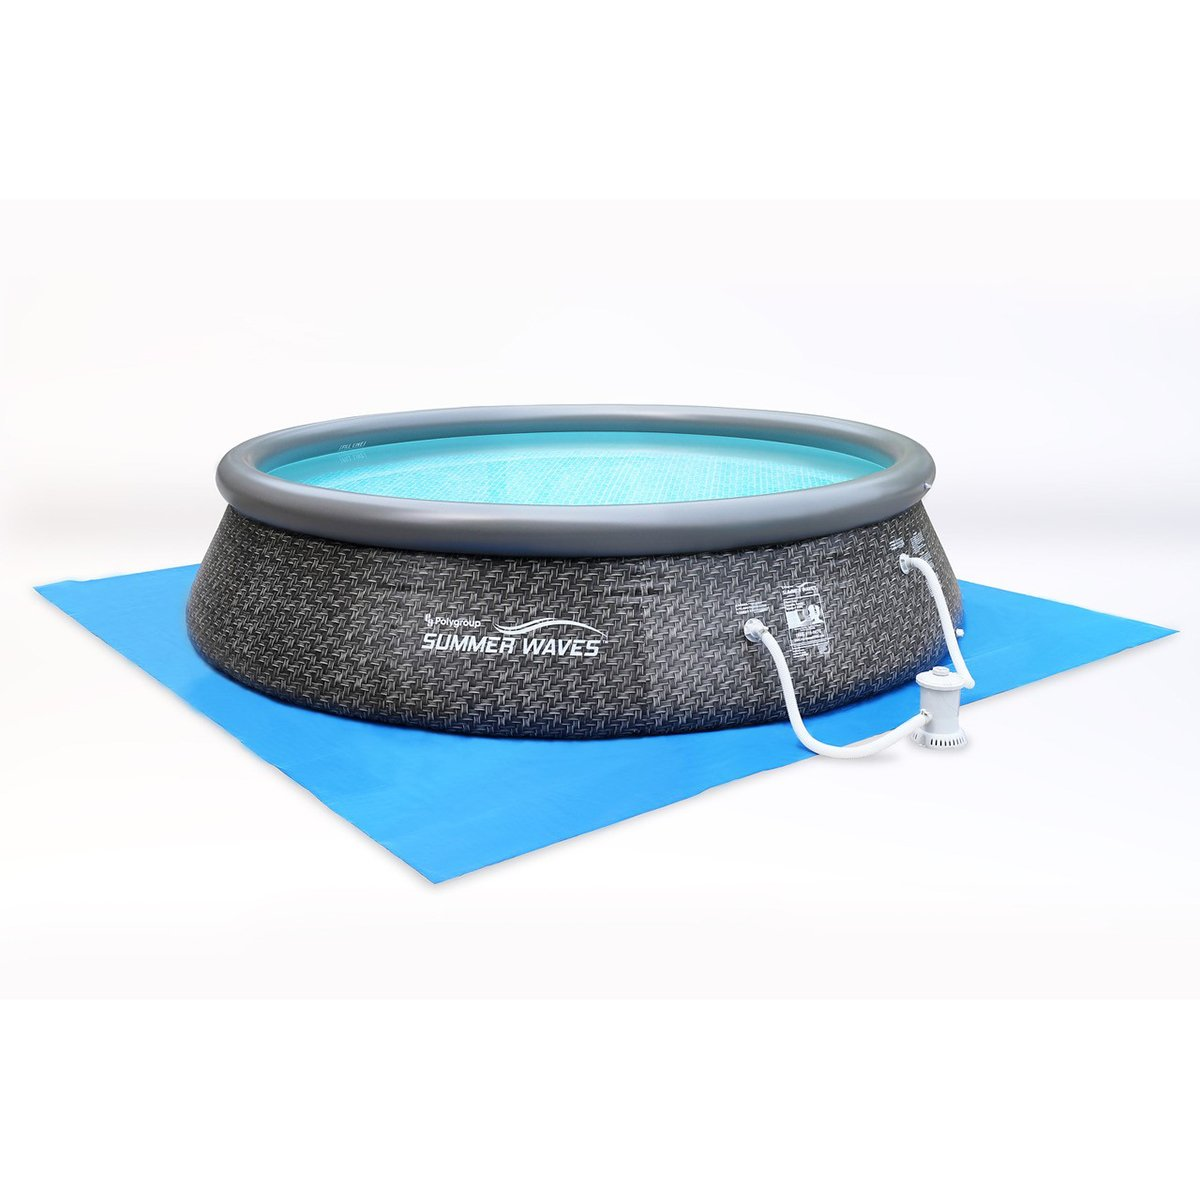 SUMMER WAVES 12-Foot Quick Set Inflatable Ring Pool Filter Pump